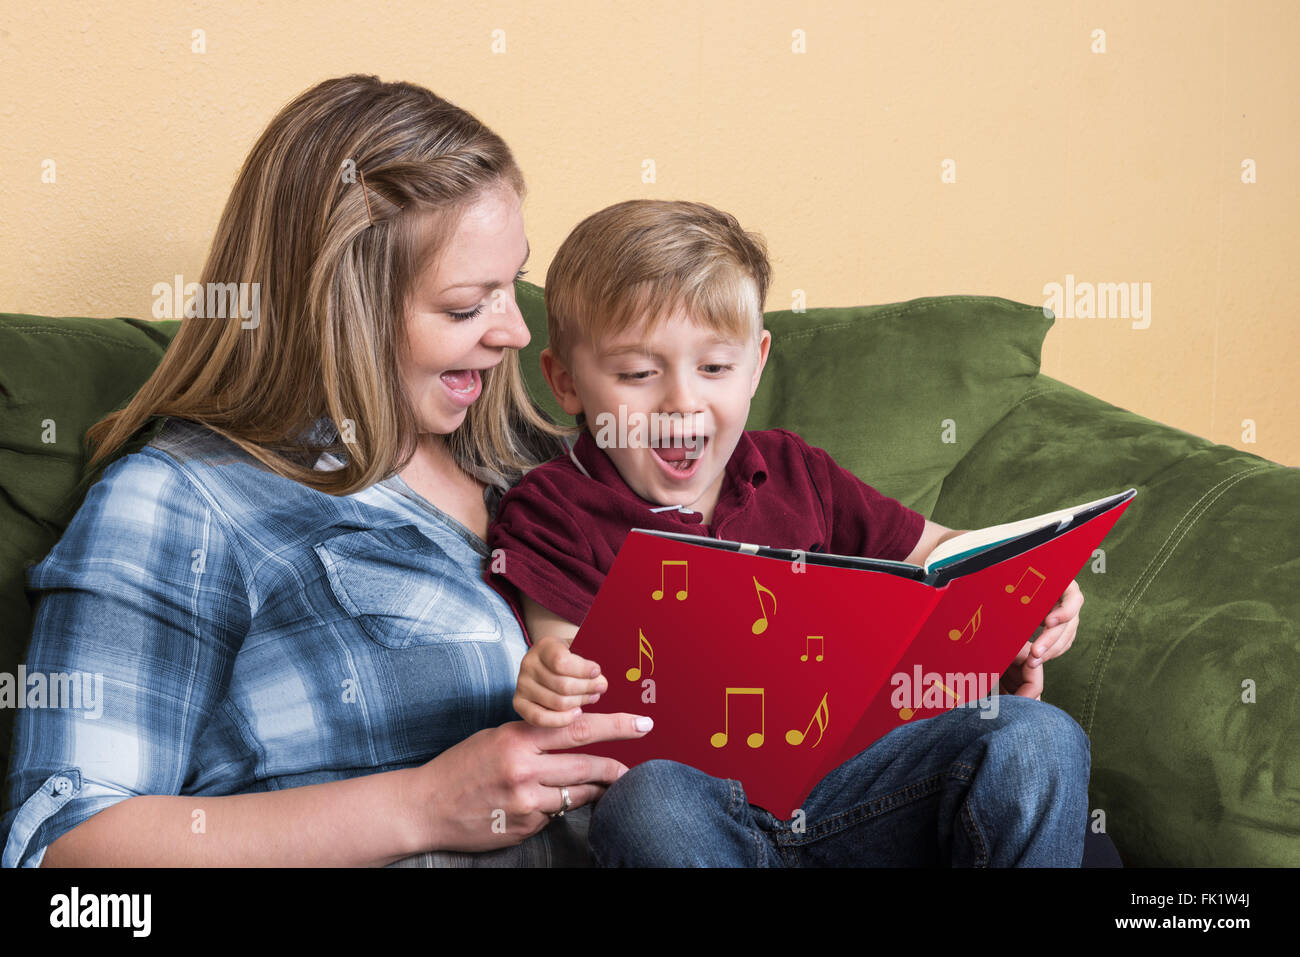 A young child gets ready to read by singing with his mother using a